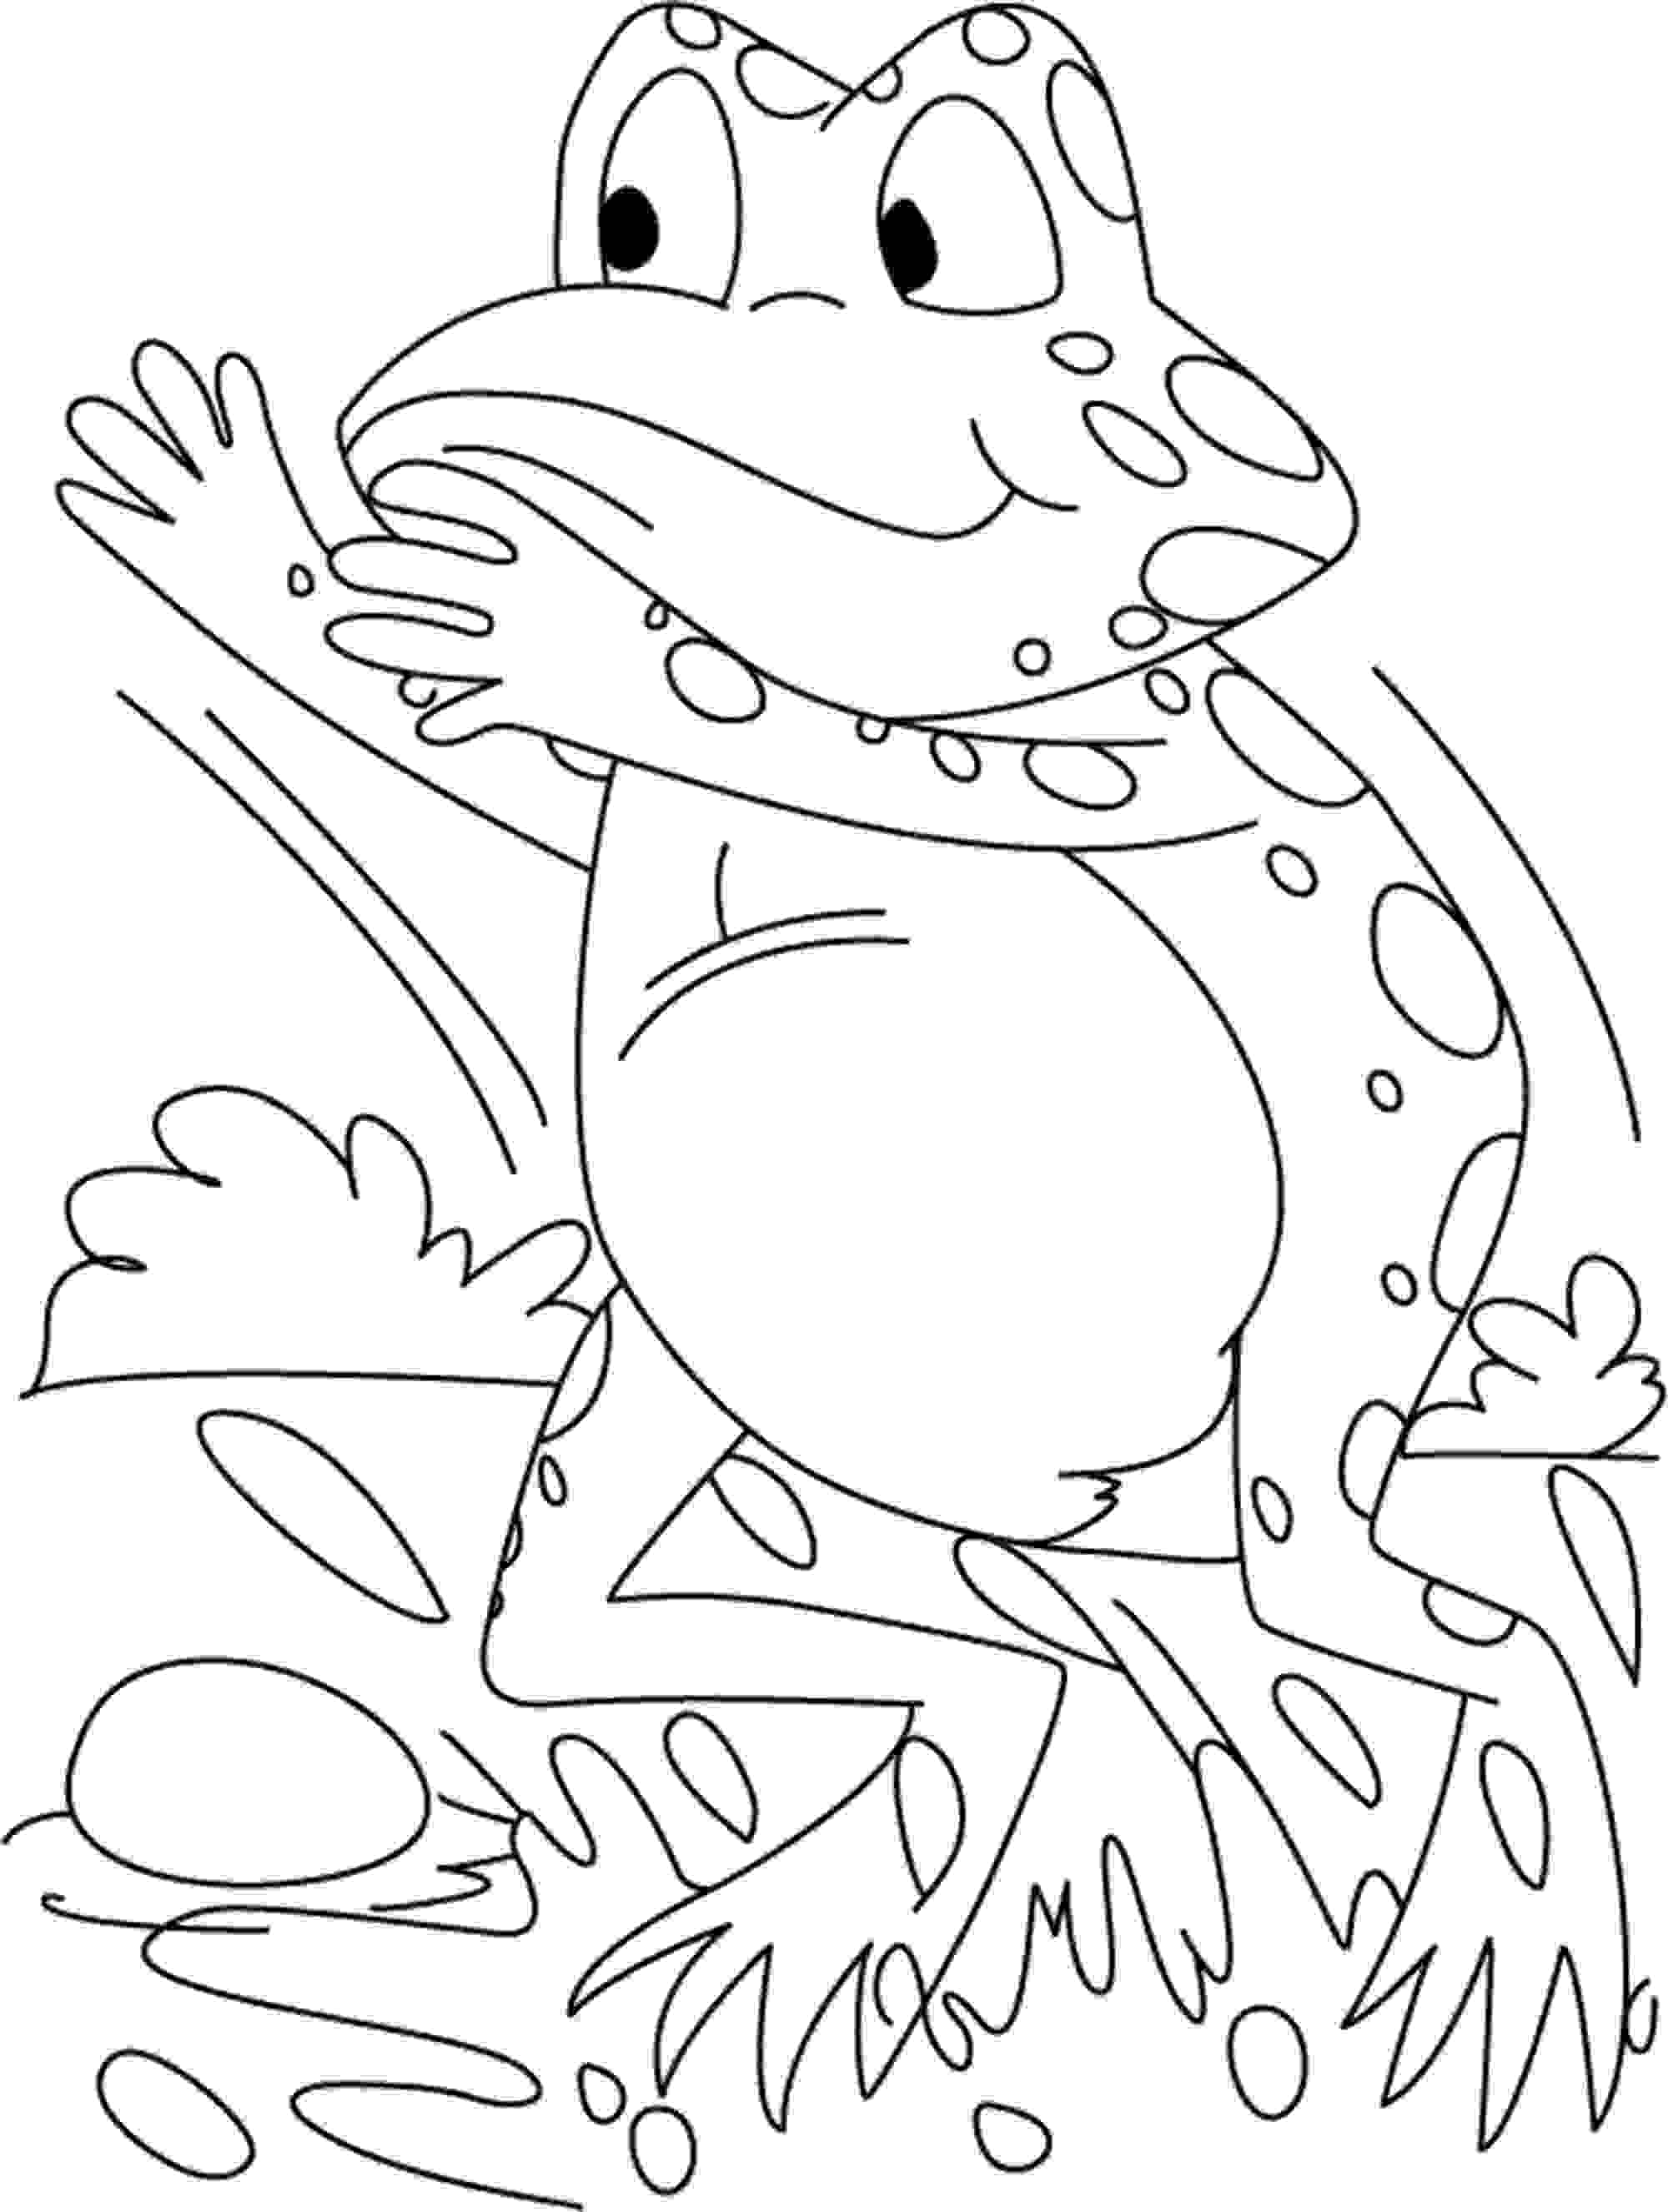 frogs coloring pages exotic frog coloring page to print or download for fkids pages frogs coloring